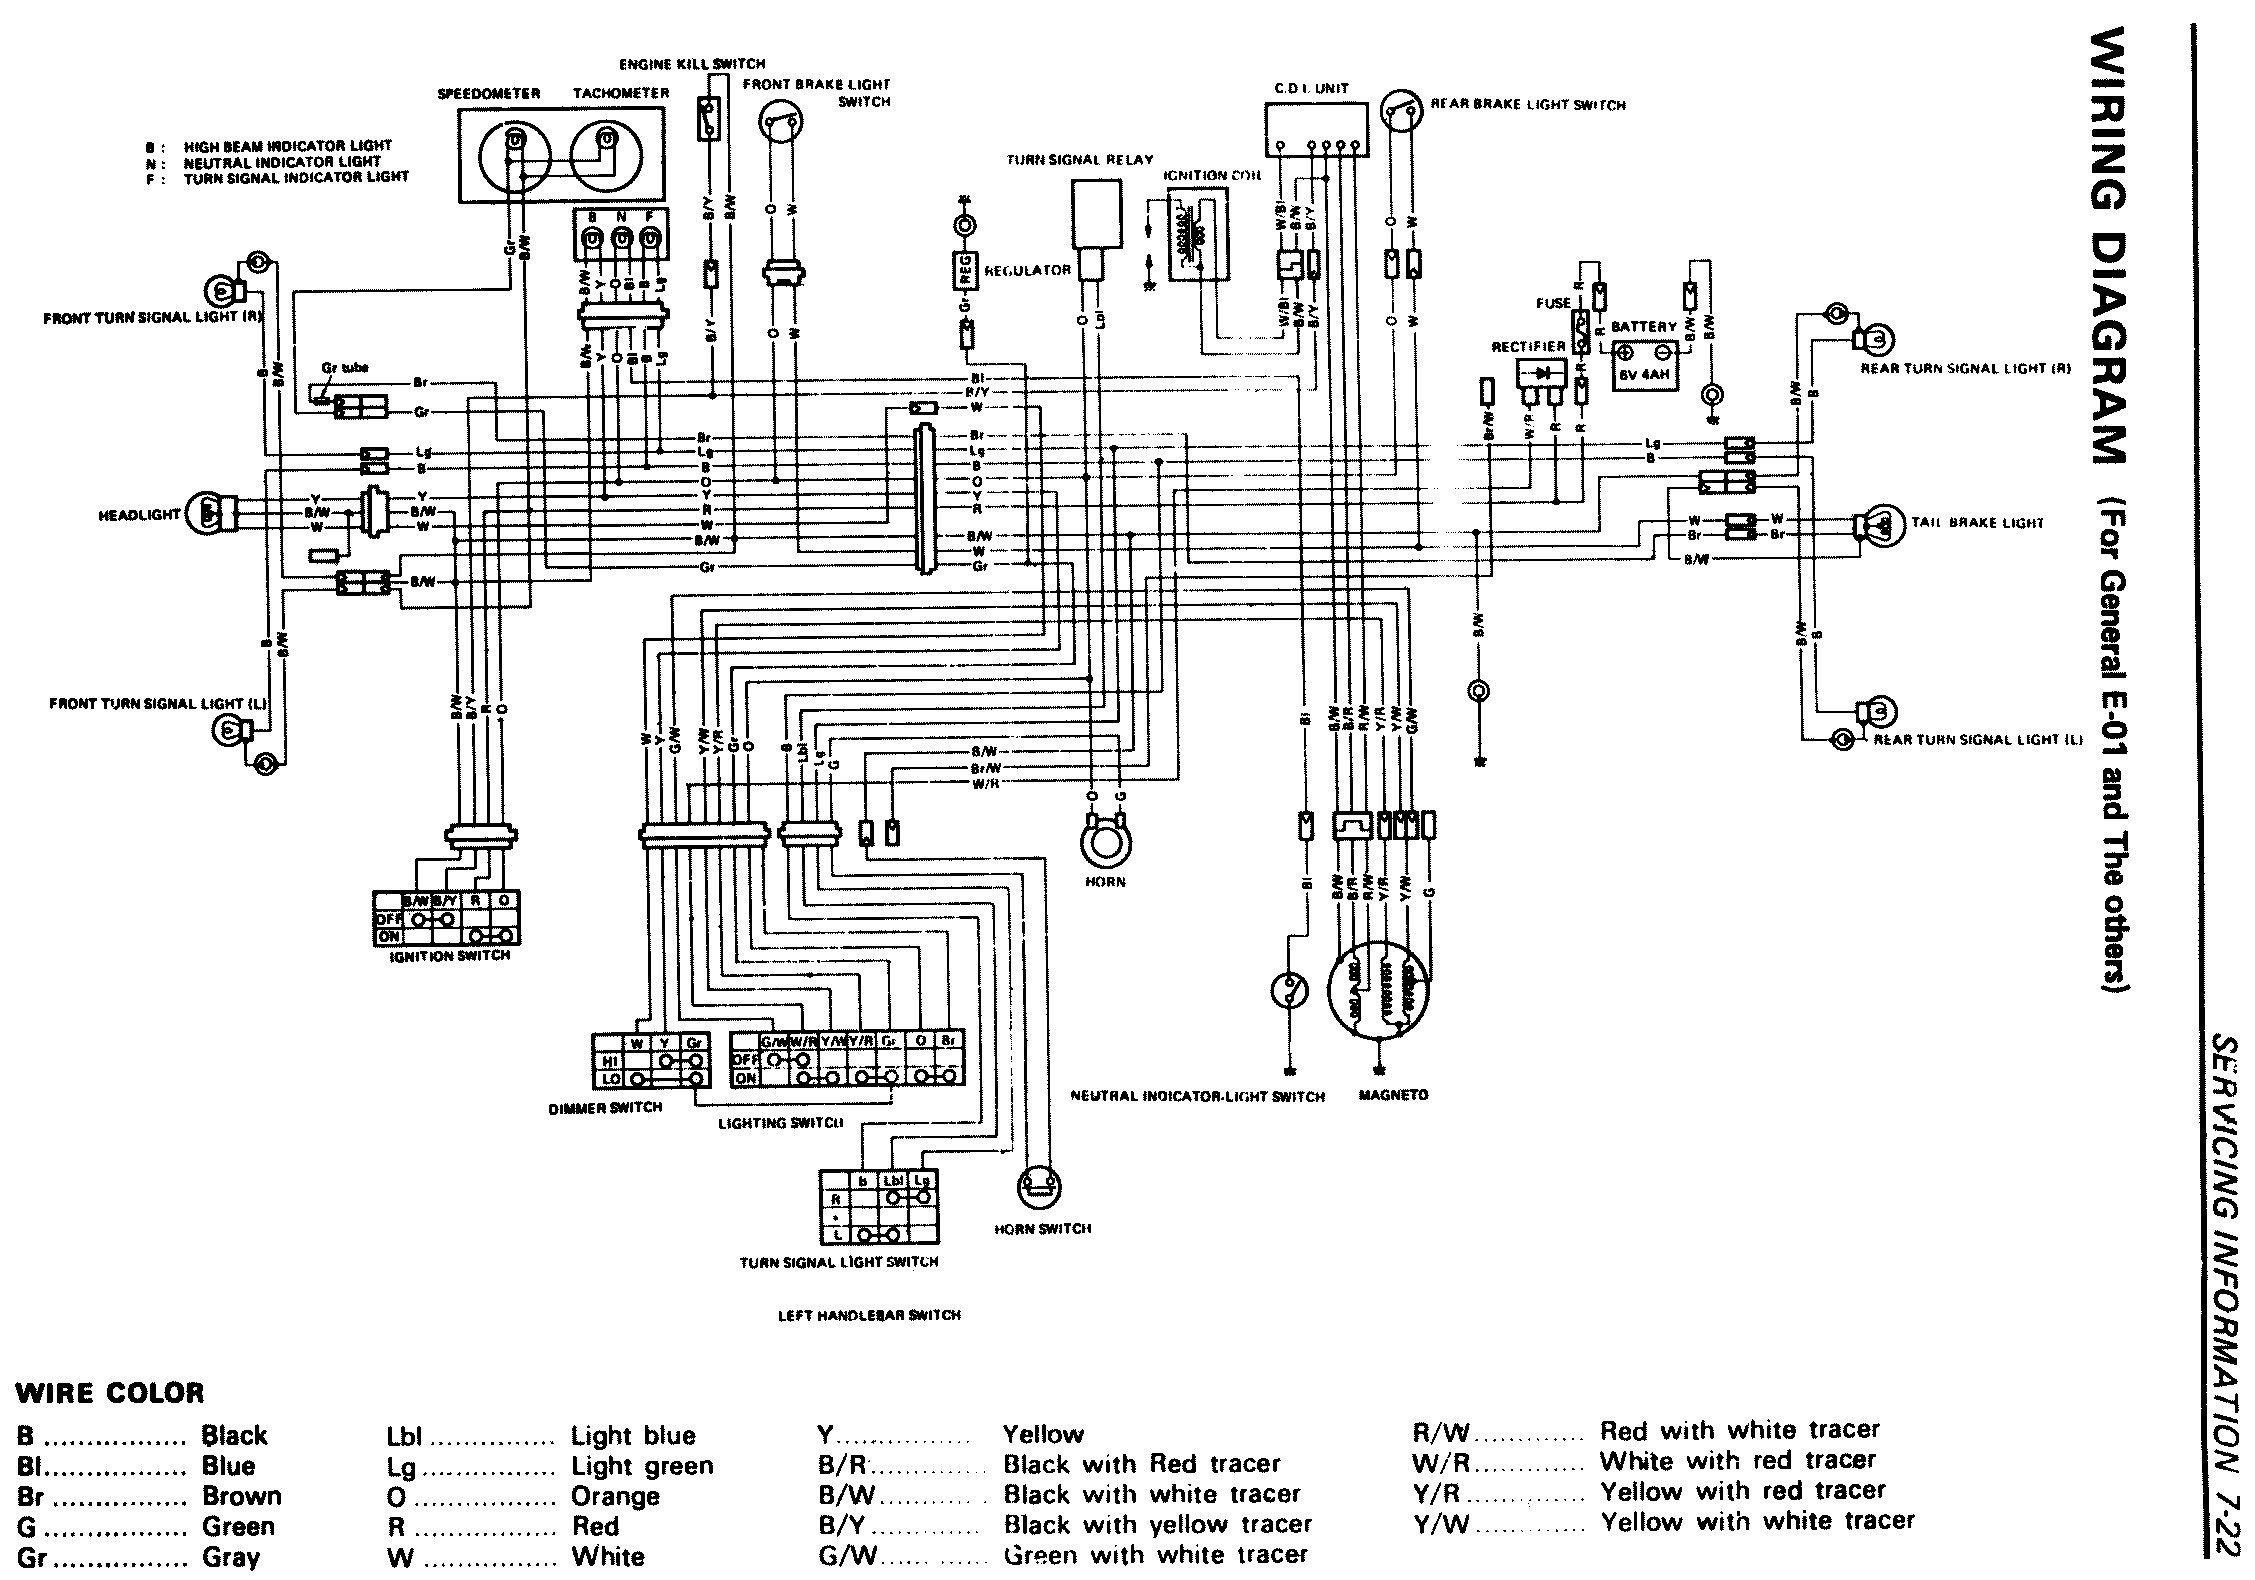 12 Volt Hydraulic Pump Wiring Diagram In 2020 Club Car Golf Cart Diagram Hydraulic Pump